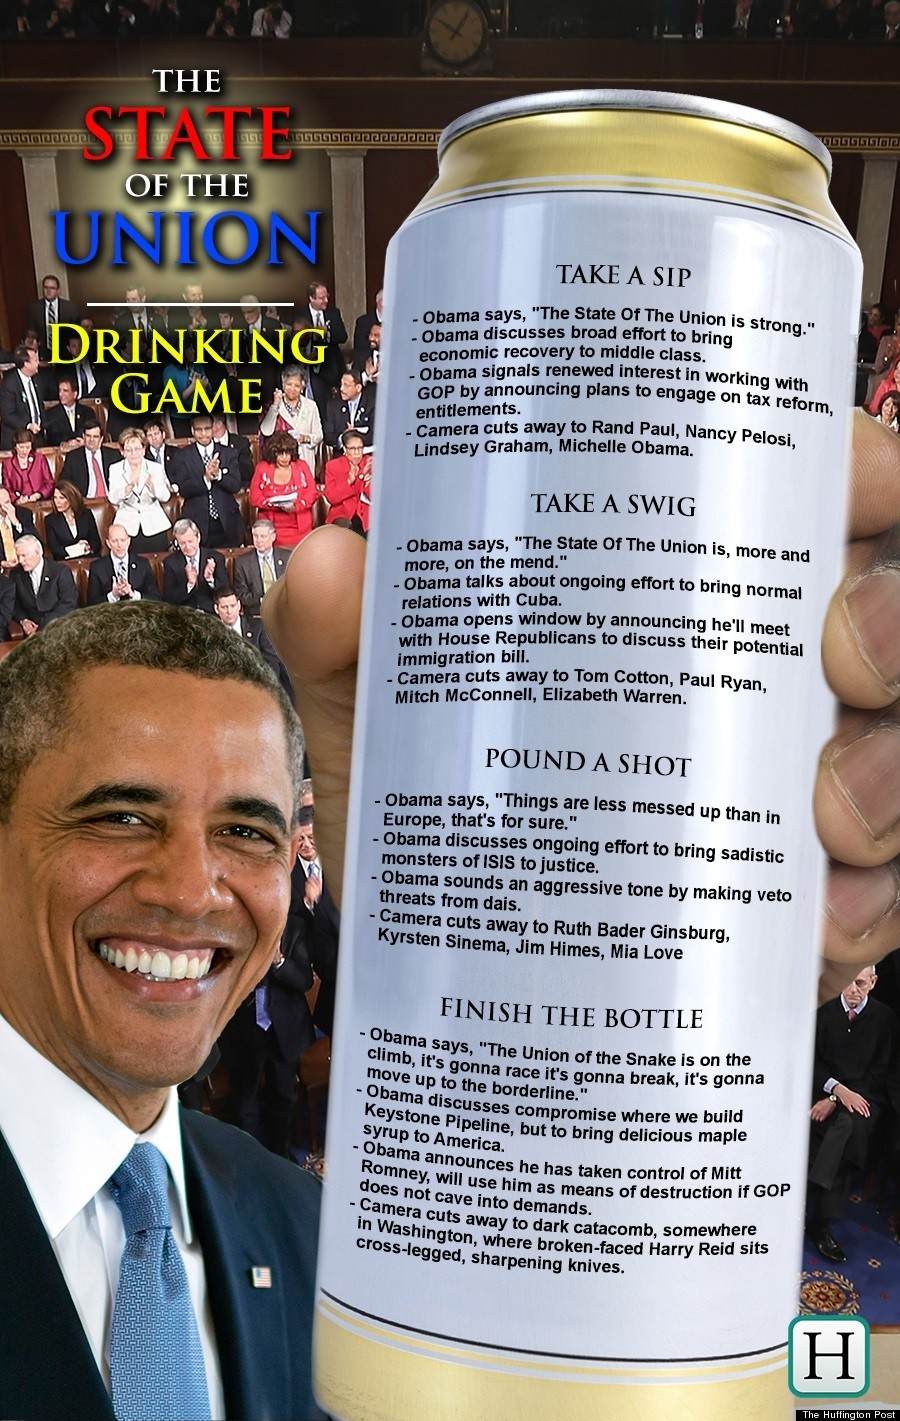 http://i.huffpost.com/gen/2513820/thumbs/o-HUFFINGTON-POST-SOTU-DRINKING-GAME-REVISED-900.jpg